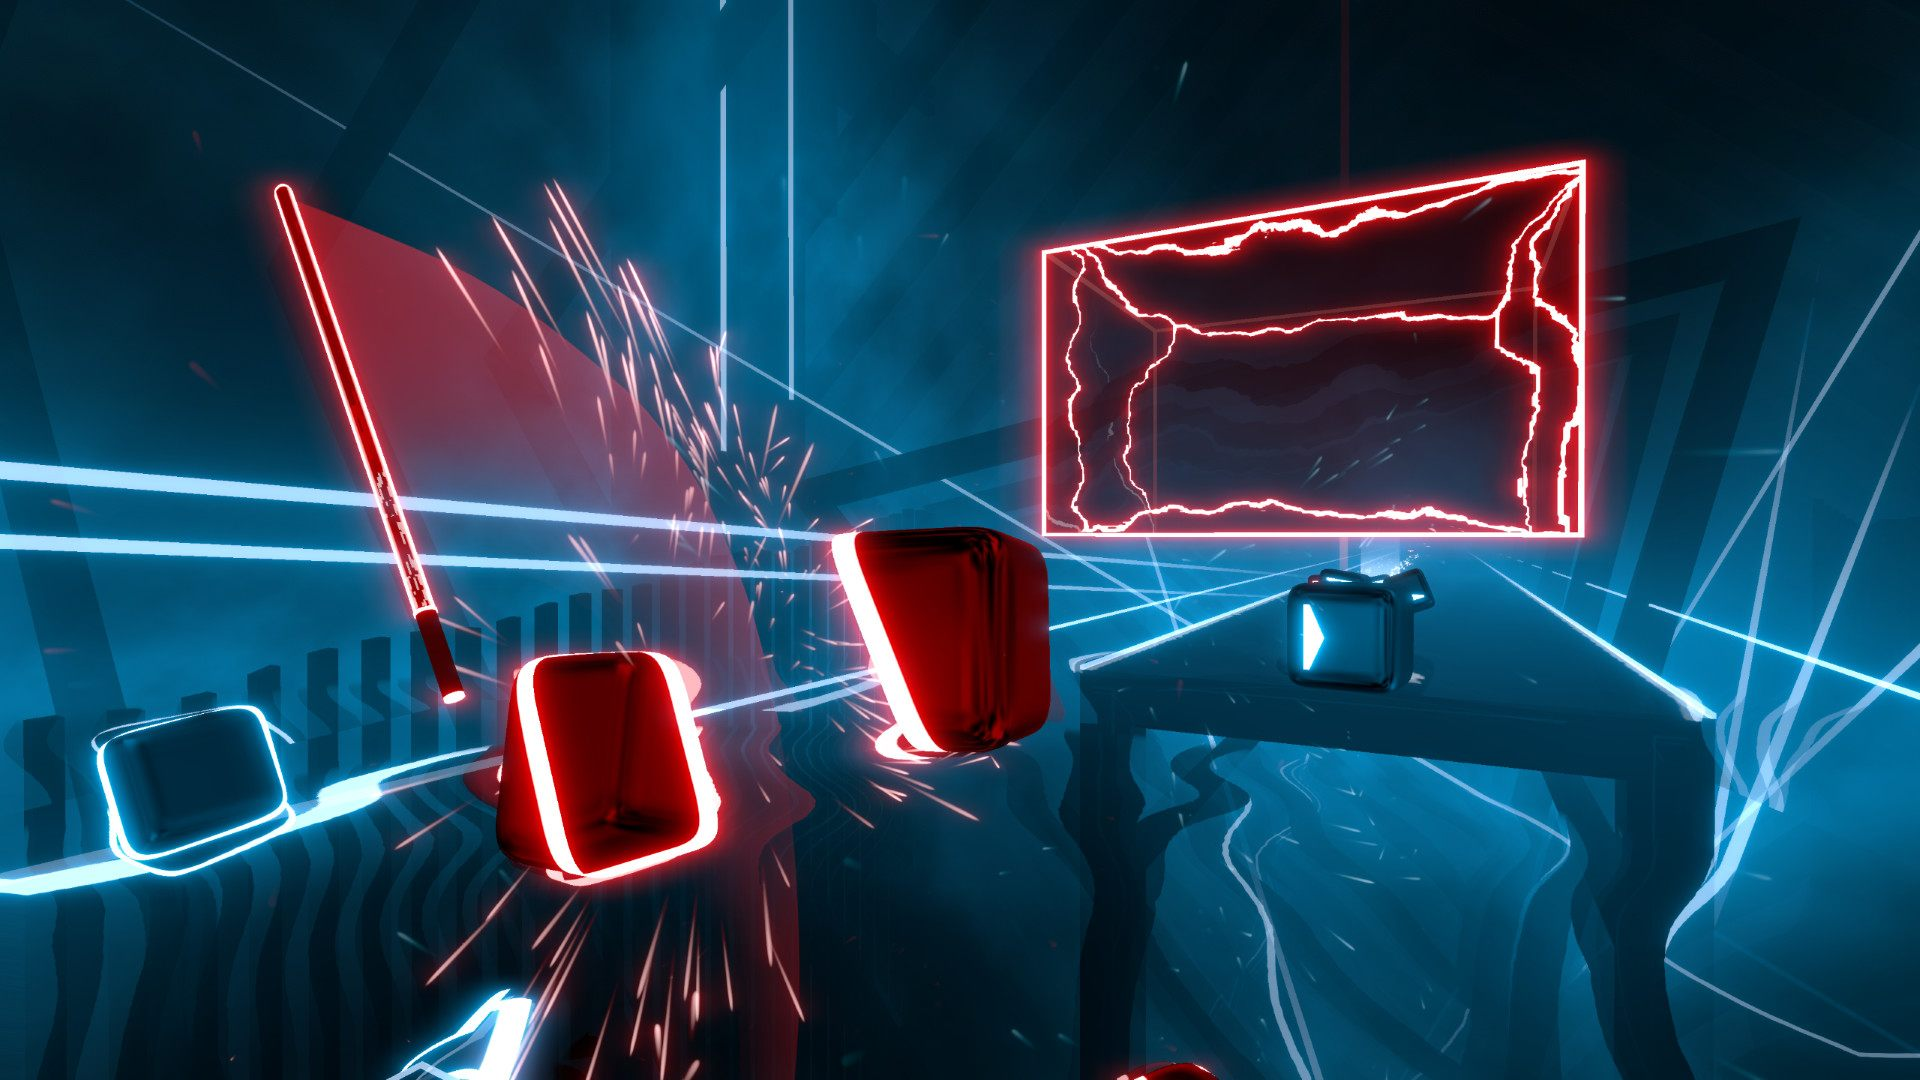 Beat Saber virtual reality VR gameplay sells one million units